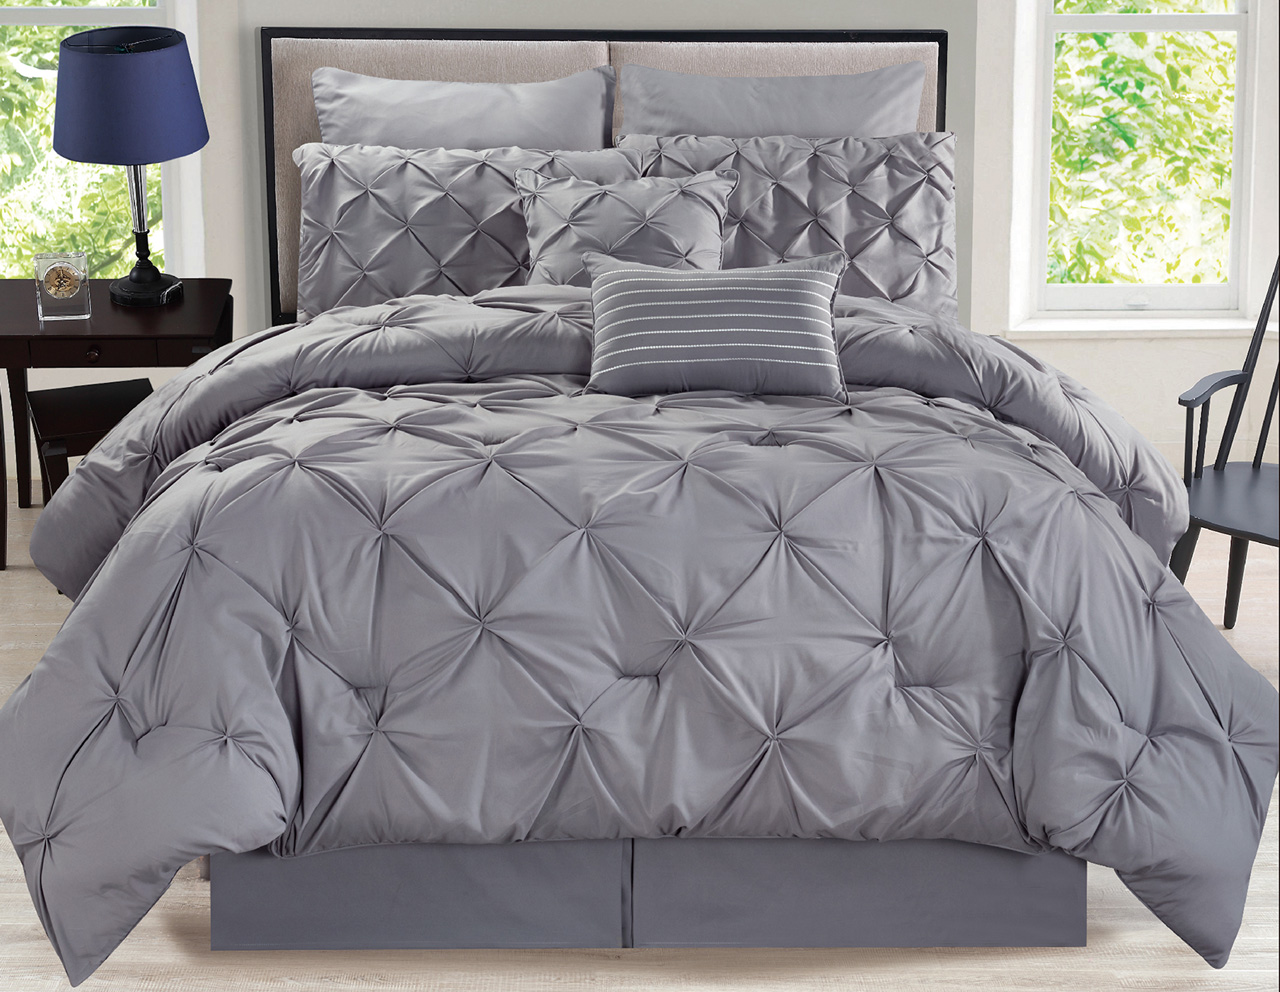 striped well black sham queen dot patterned with king also white set as gray bed frame for cushion sets grey dark on sleep cream comforter astonishing full comfortable bedroom and